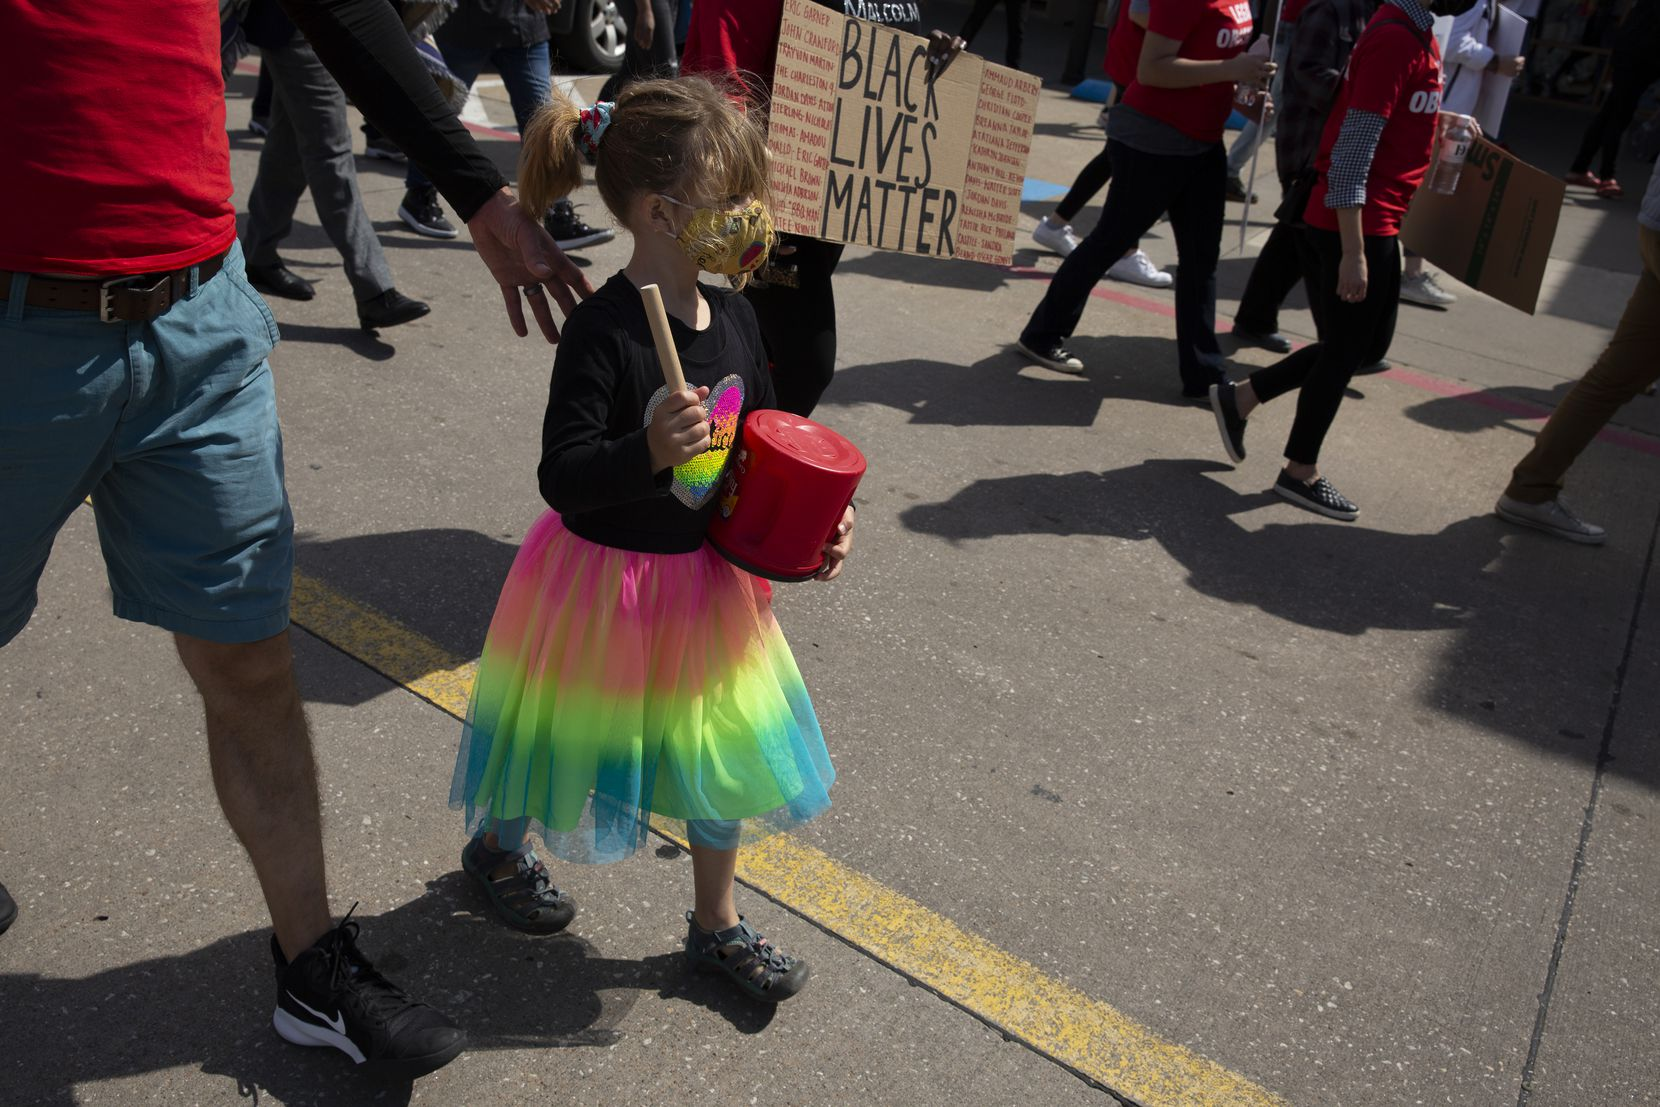 Naomi Ridenour, 6, hits drum to the beat of a chant during a march at the Allen Outlets on Sunday, March 21, 2021 demanding justice for Marvin Scott III, who died a week prior while in custody at the Collin County Jail on March 14, 2021. Demonstrators called for the arrest of the ÒCollin County SevenÓ, the seven Collin County Jail employees who were placed on leave after MarvinÕs death. (Shelby Tauber/Special Contributor)